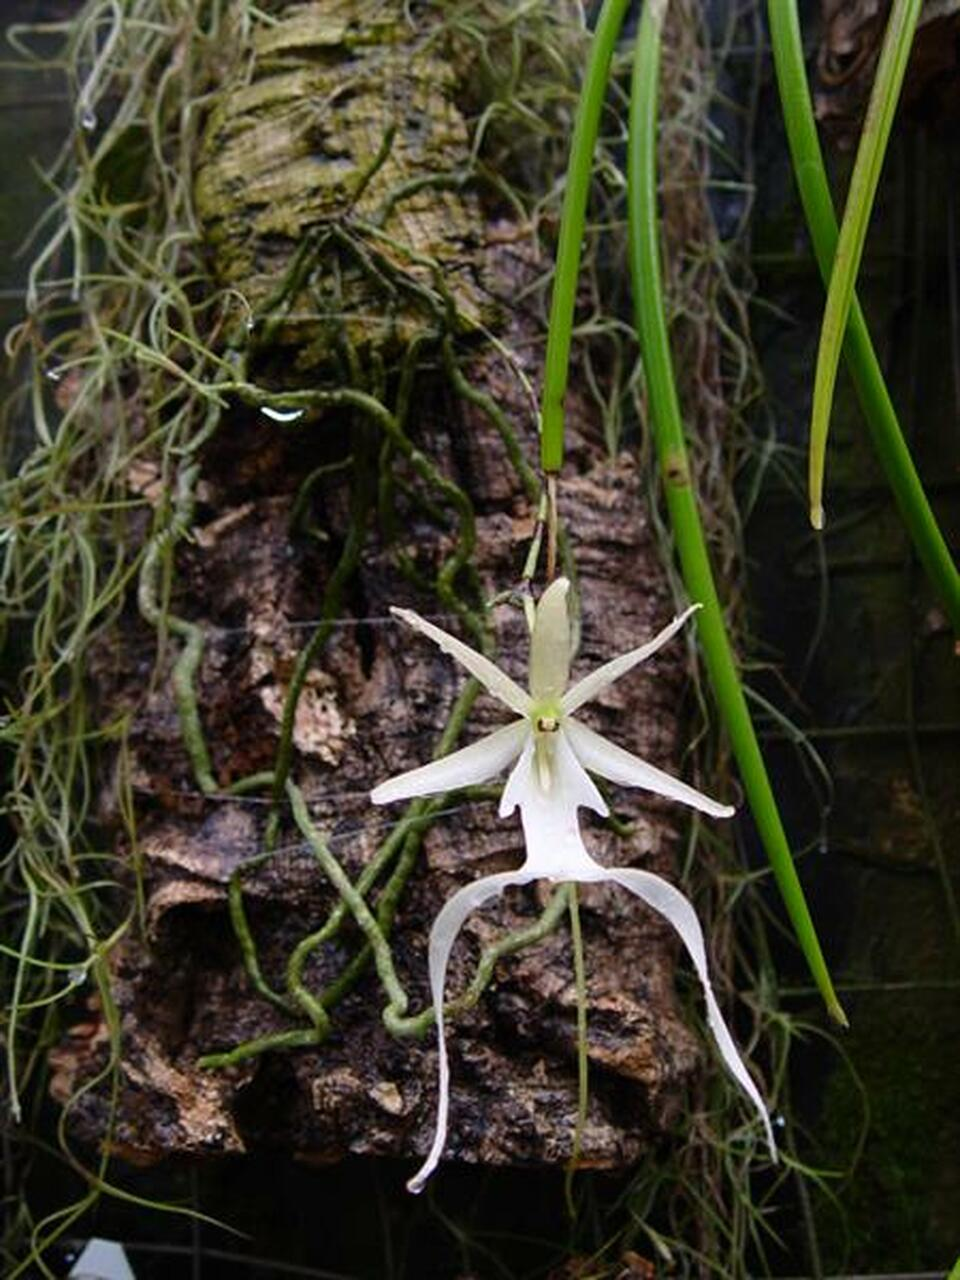 Dendrophylax lindenii - 'The Ghost Orchid'